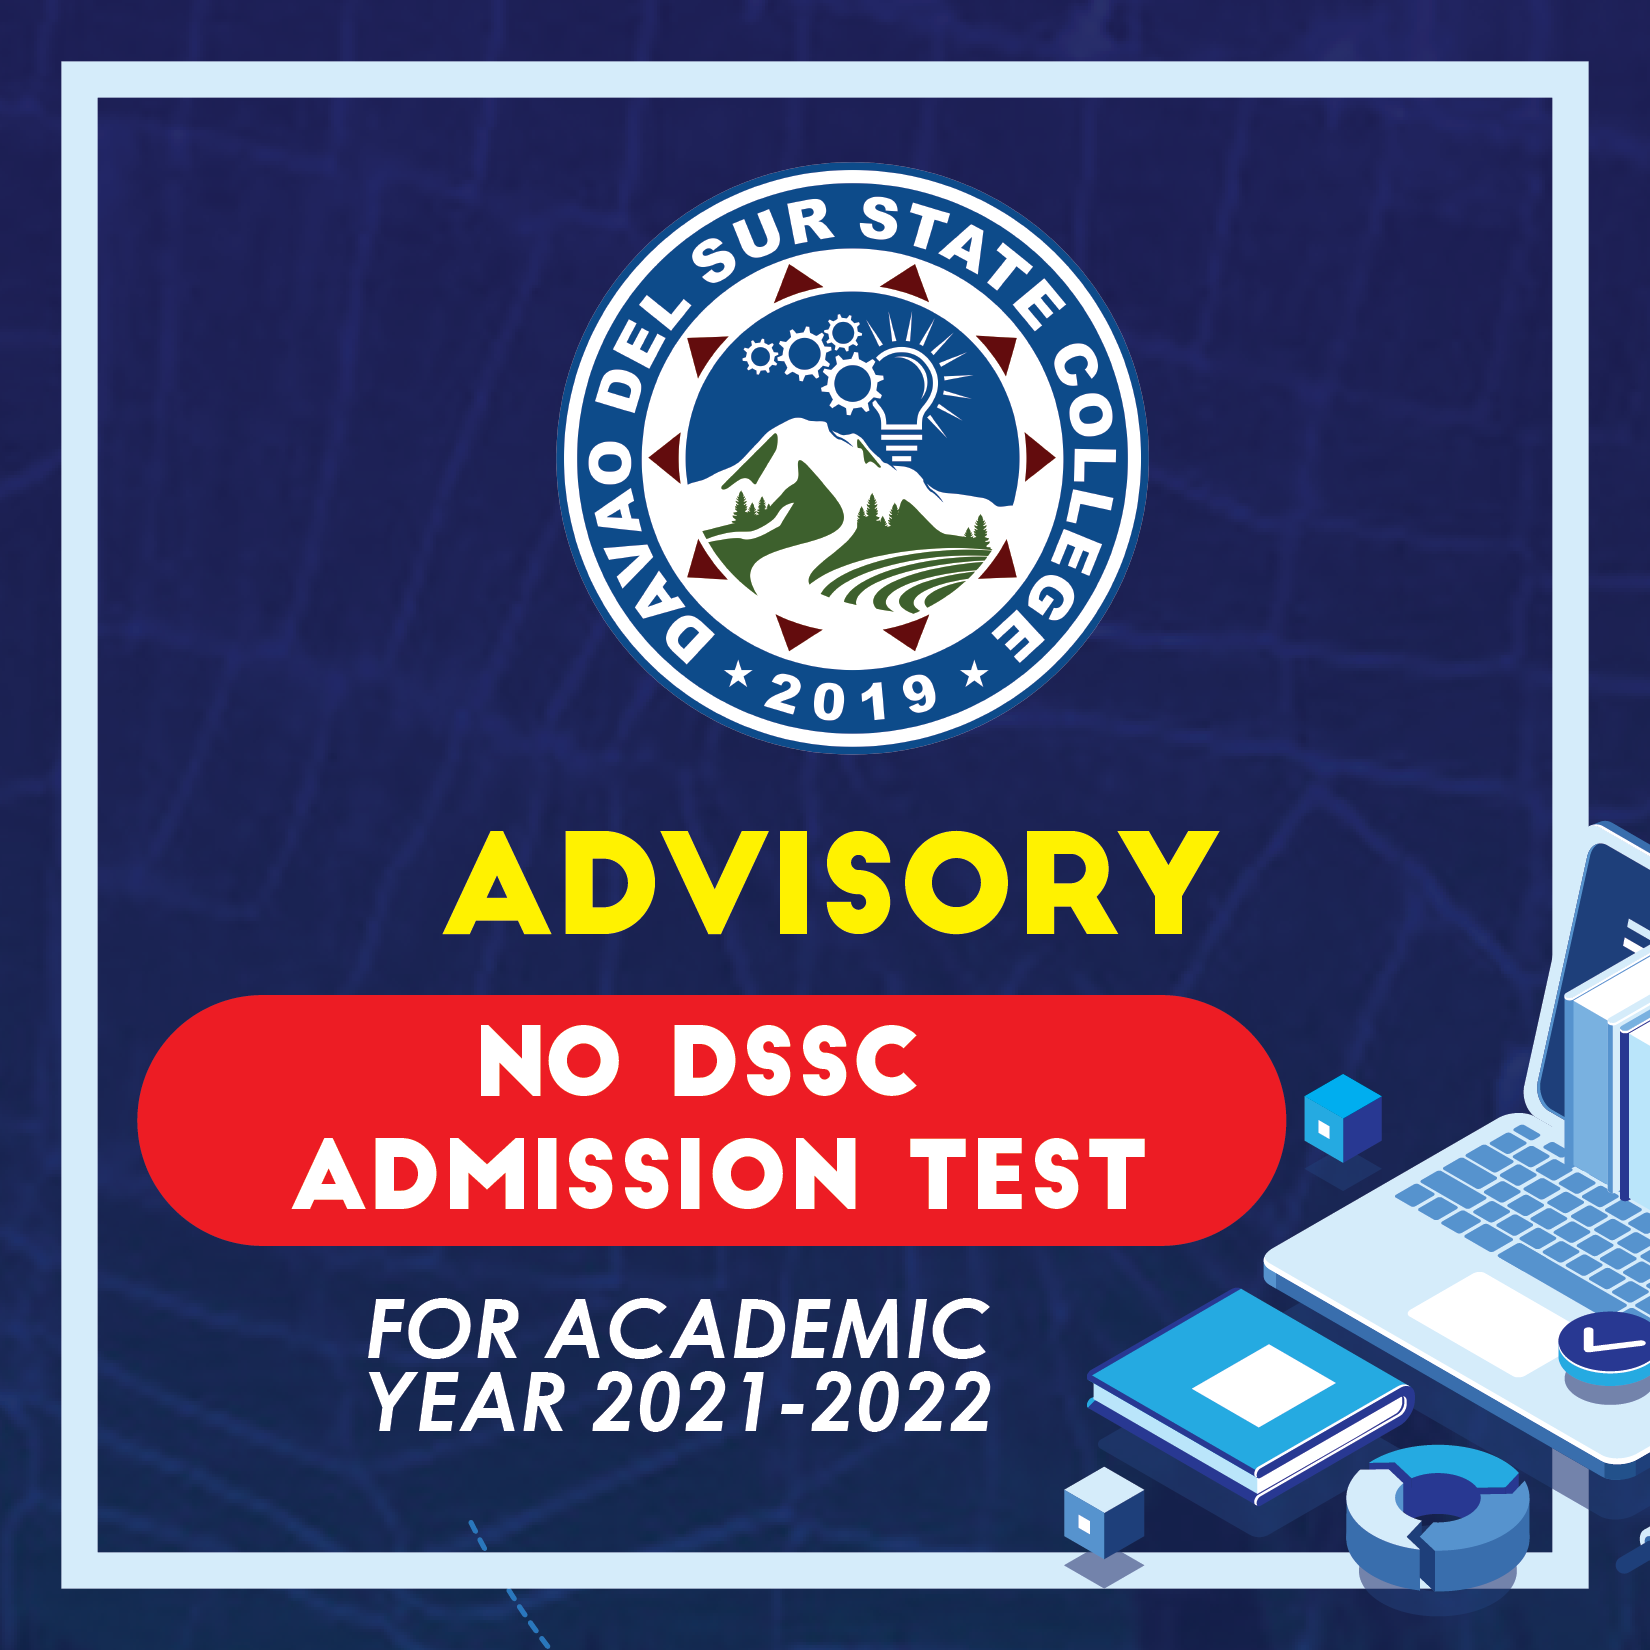 DSSC-Admission for School Year 2021-2022